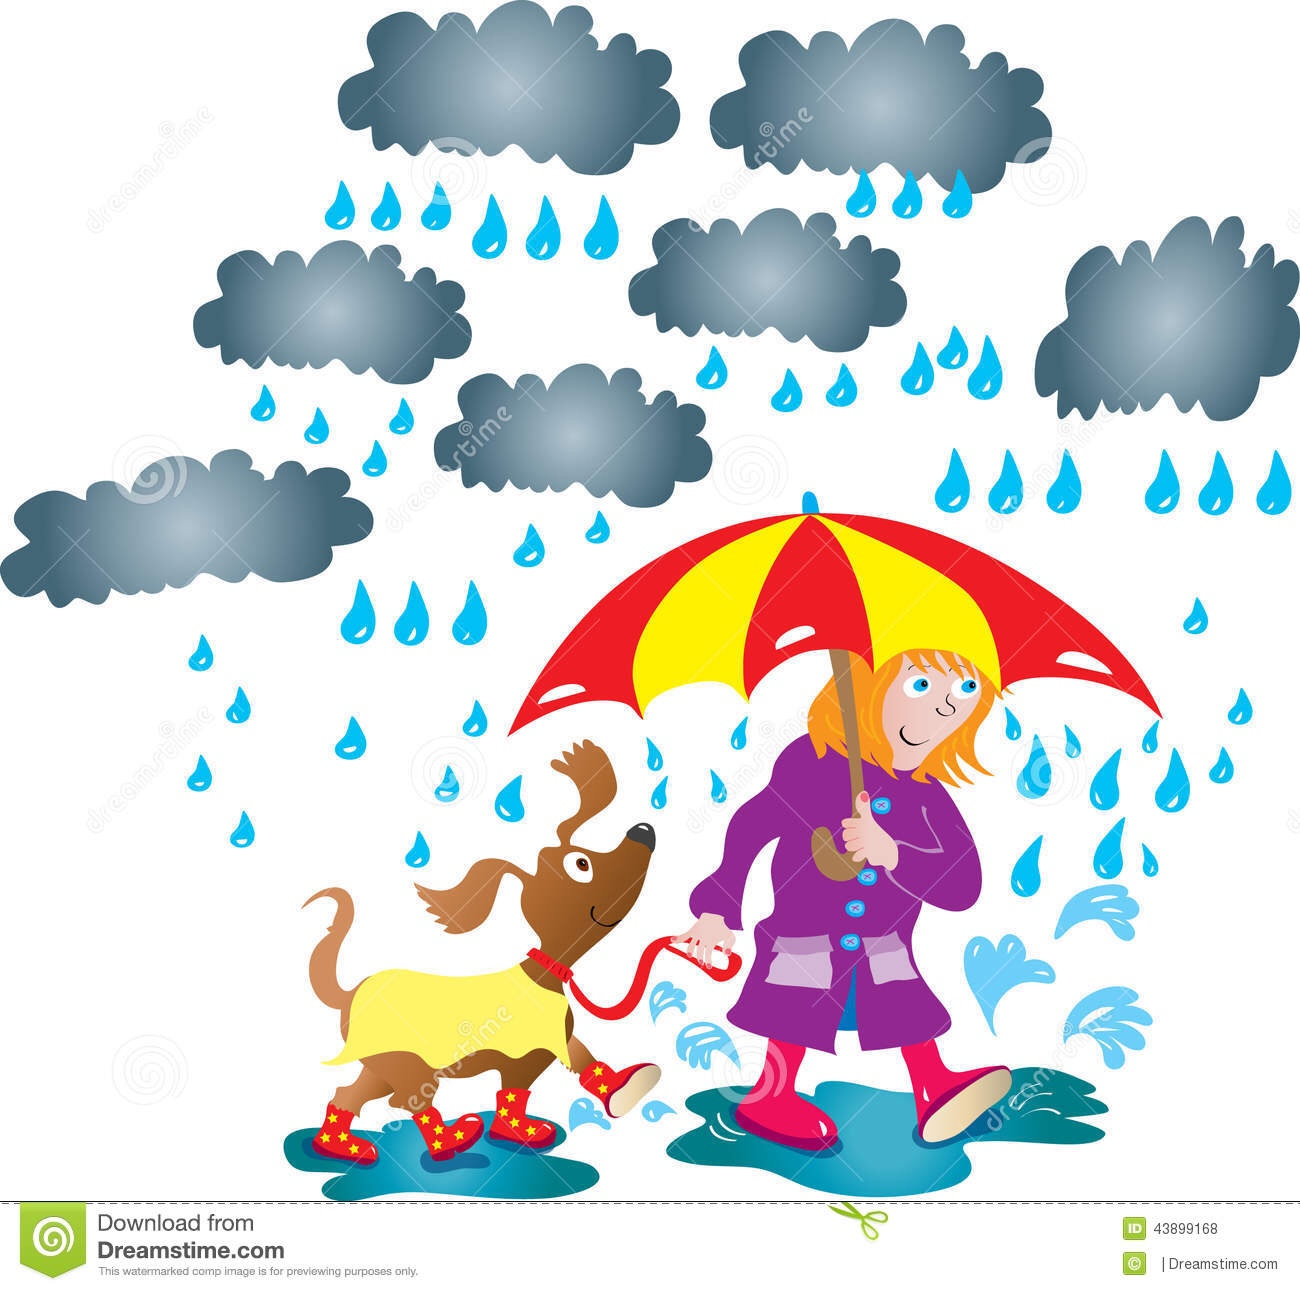 Windy clipart good morning. Afternoon or evening page